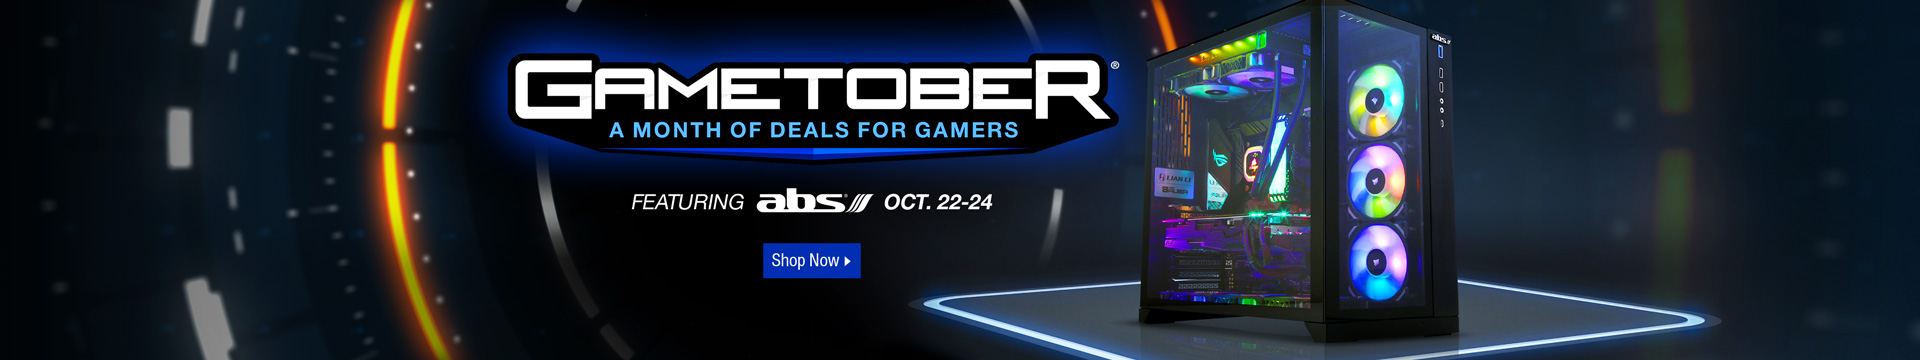 Gametober Featuring abs